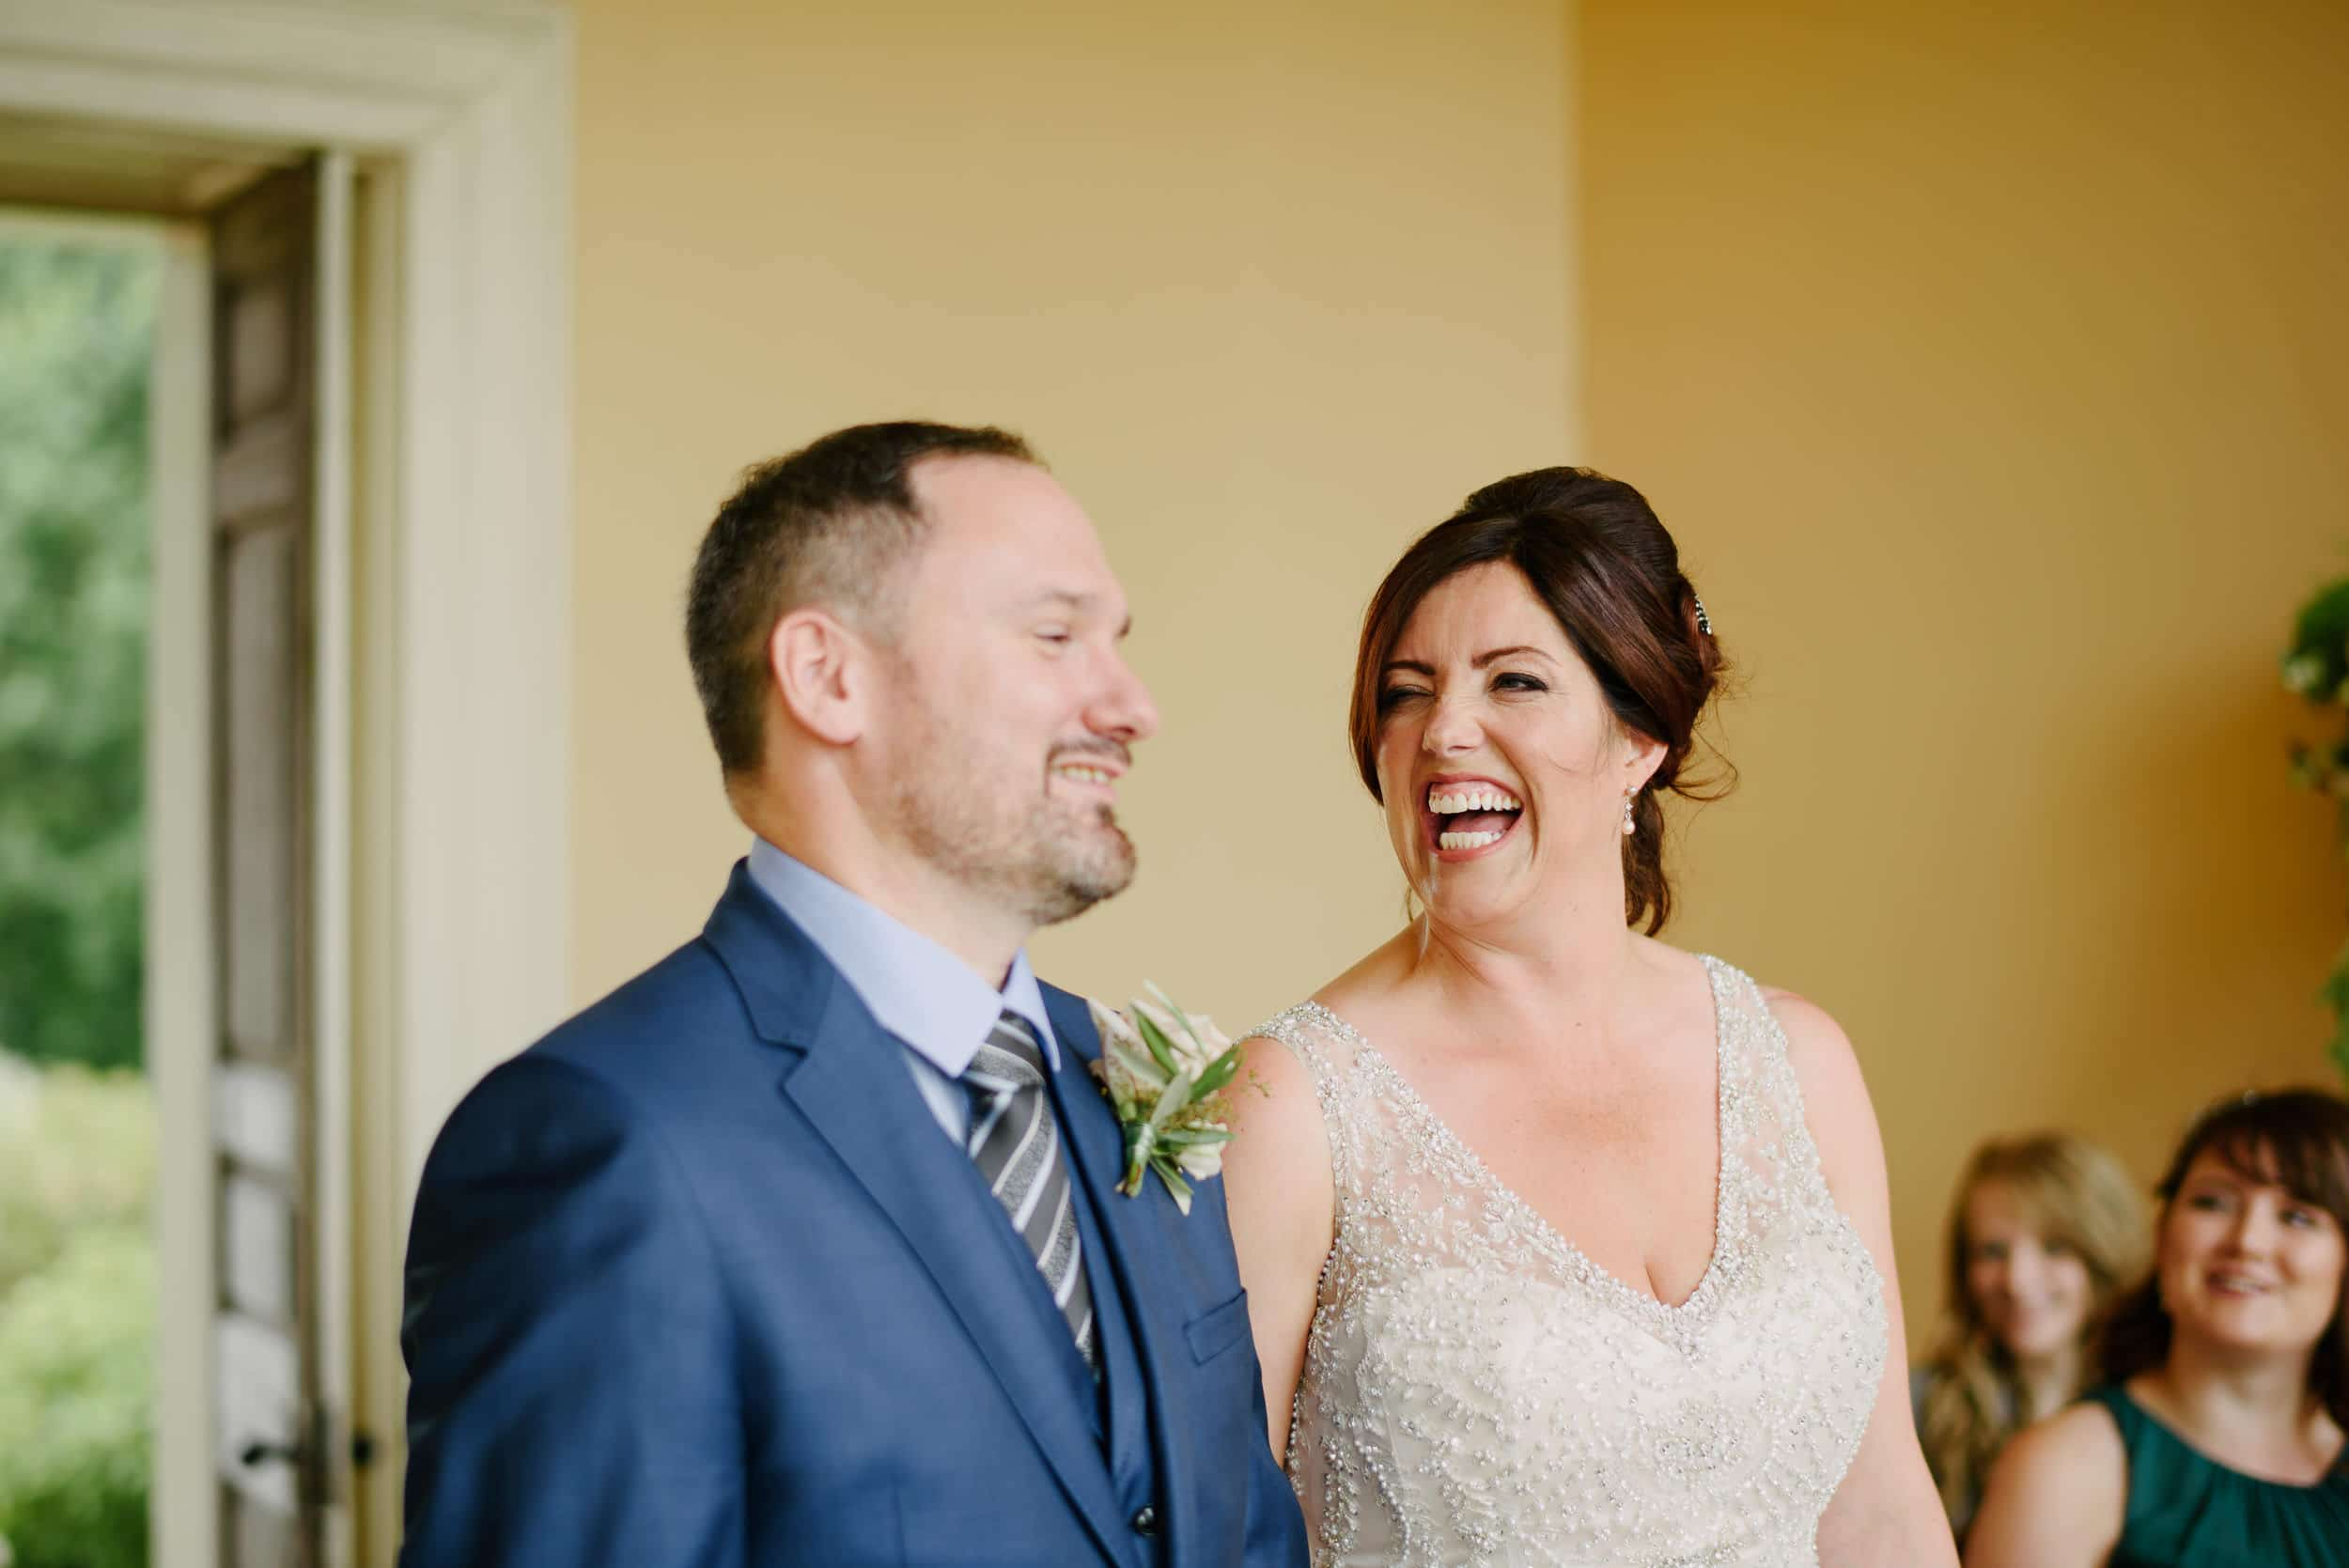 Suzy & Mike - Blickling Hall Wedding 16